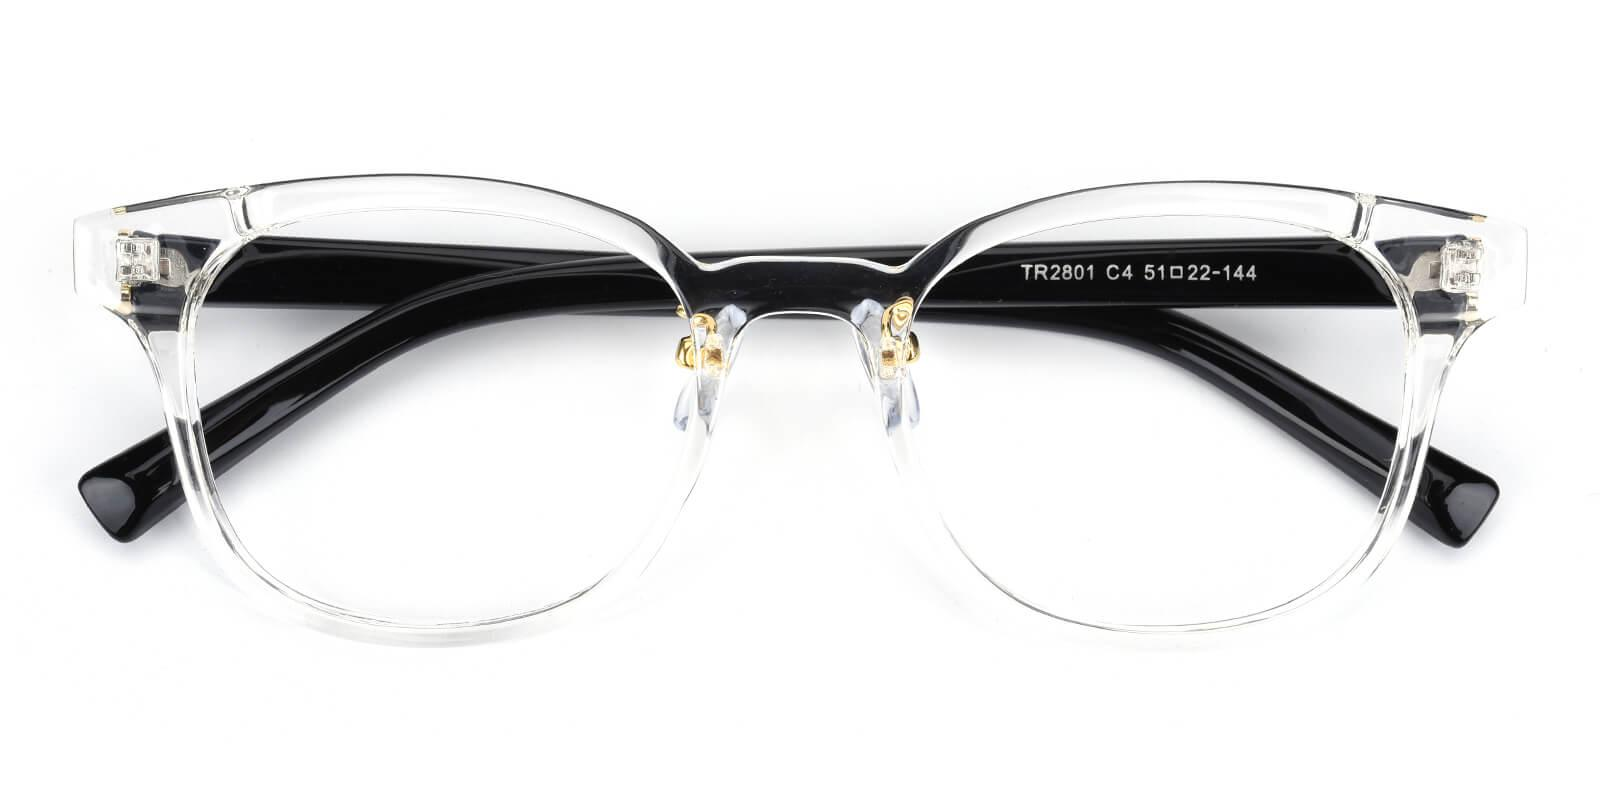 Durns-Translucent-Square-TR-Eyeglasses-detail